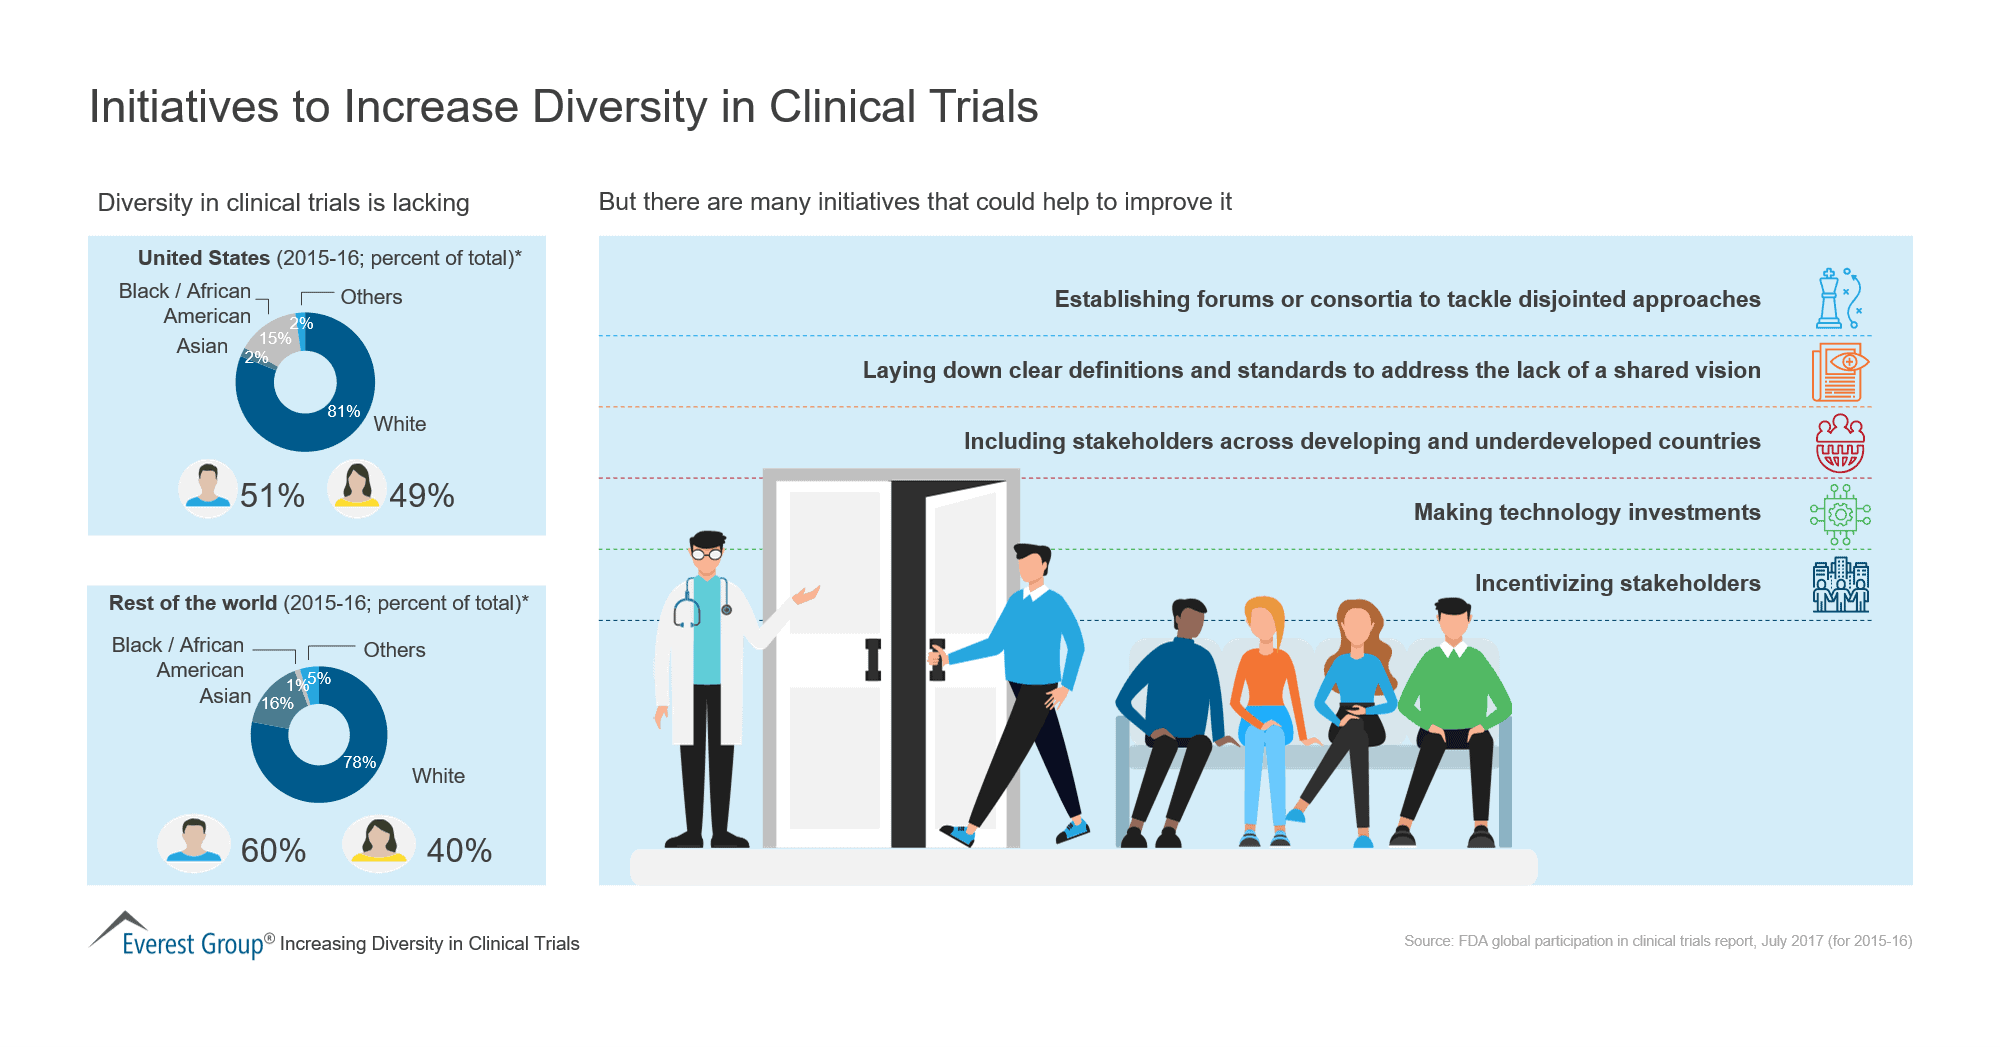 Initiatives to Increase Diversity in Clinical Trials